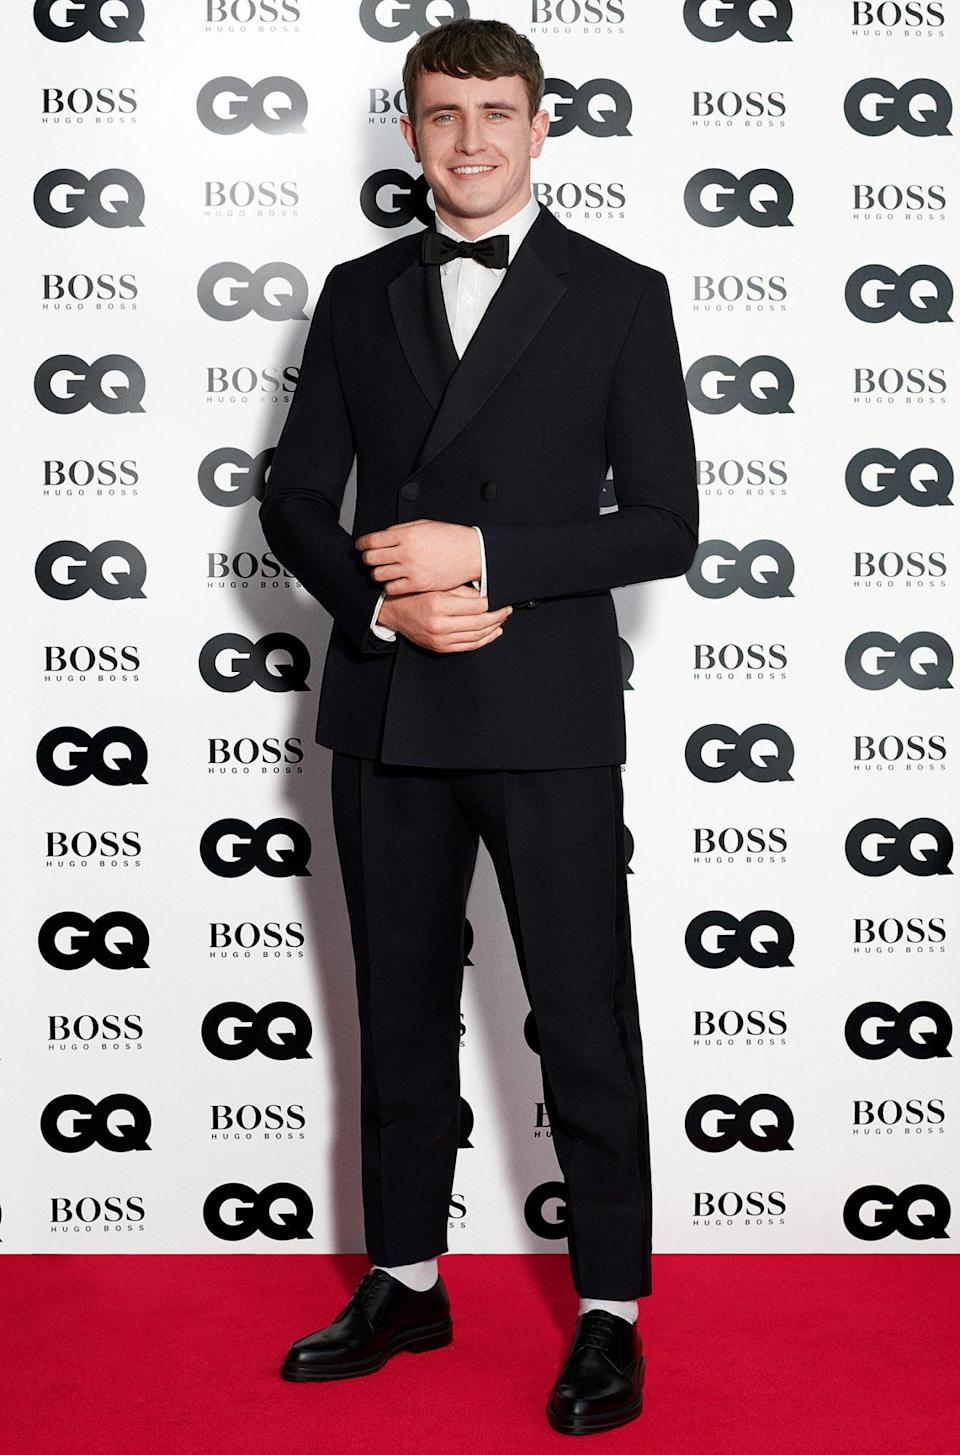 <p>Actor Paul Mescal accepts the Hugo Boss Breakthrough Actor Award at the GQ Men of The Year Awards on Thursday in London, England. </p>